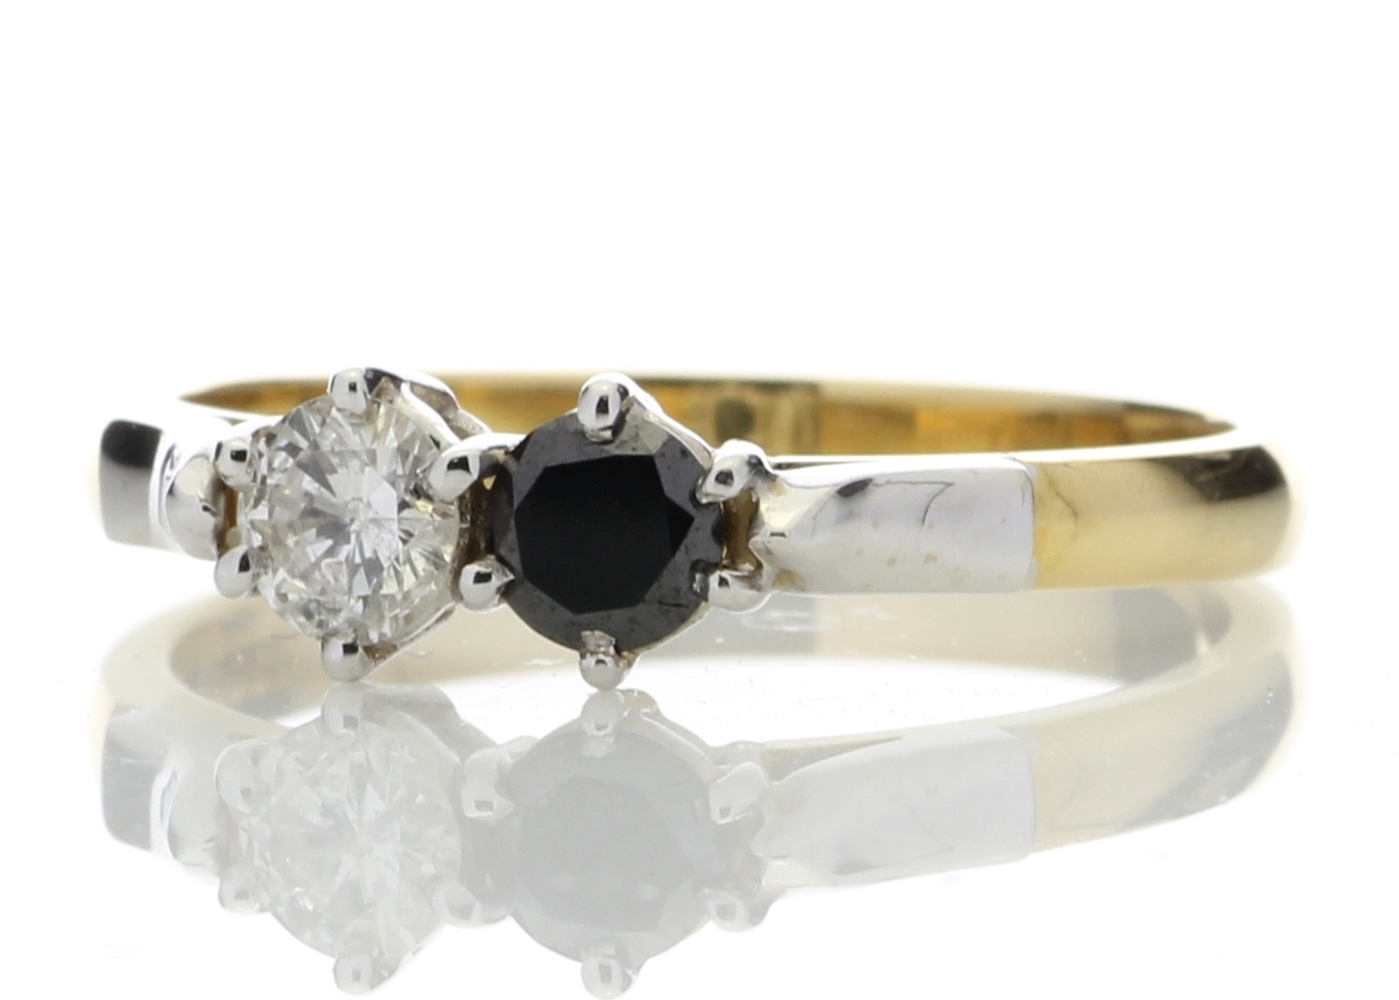 18k Two Stone Claw Set Diamond With Black Treated Stone Ring 0.50 Carats - Image 2 of 4